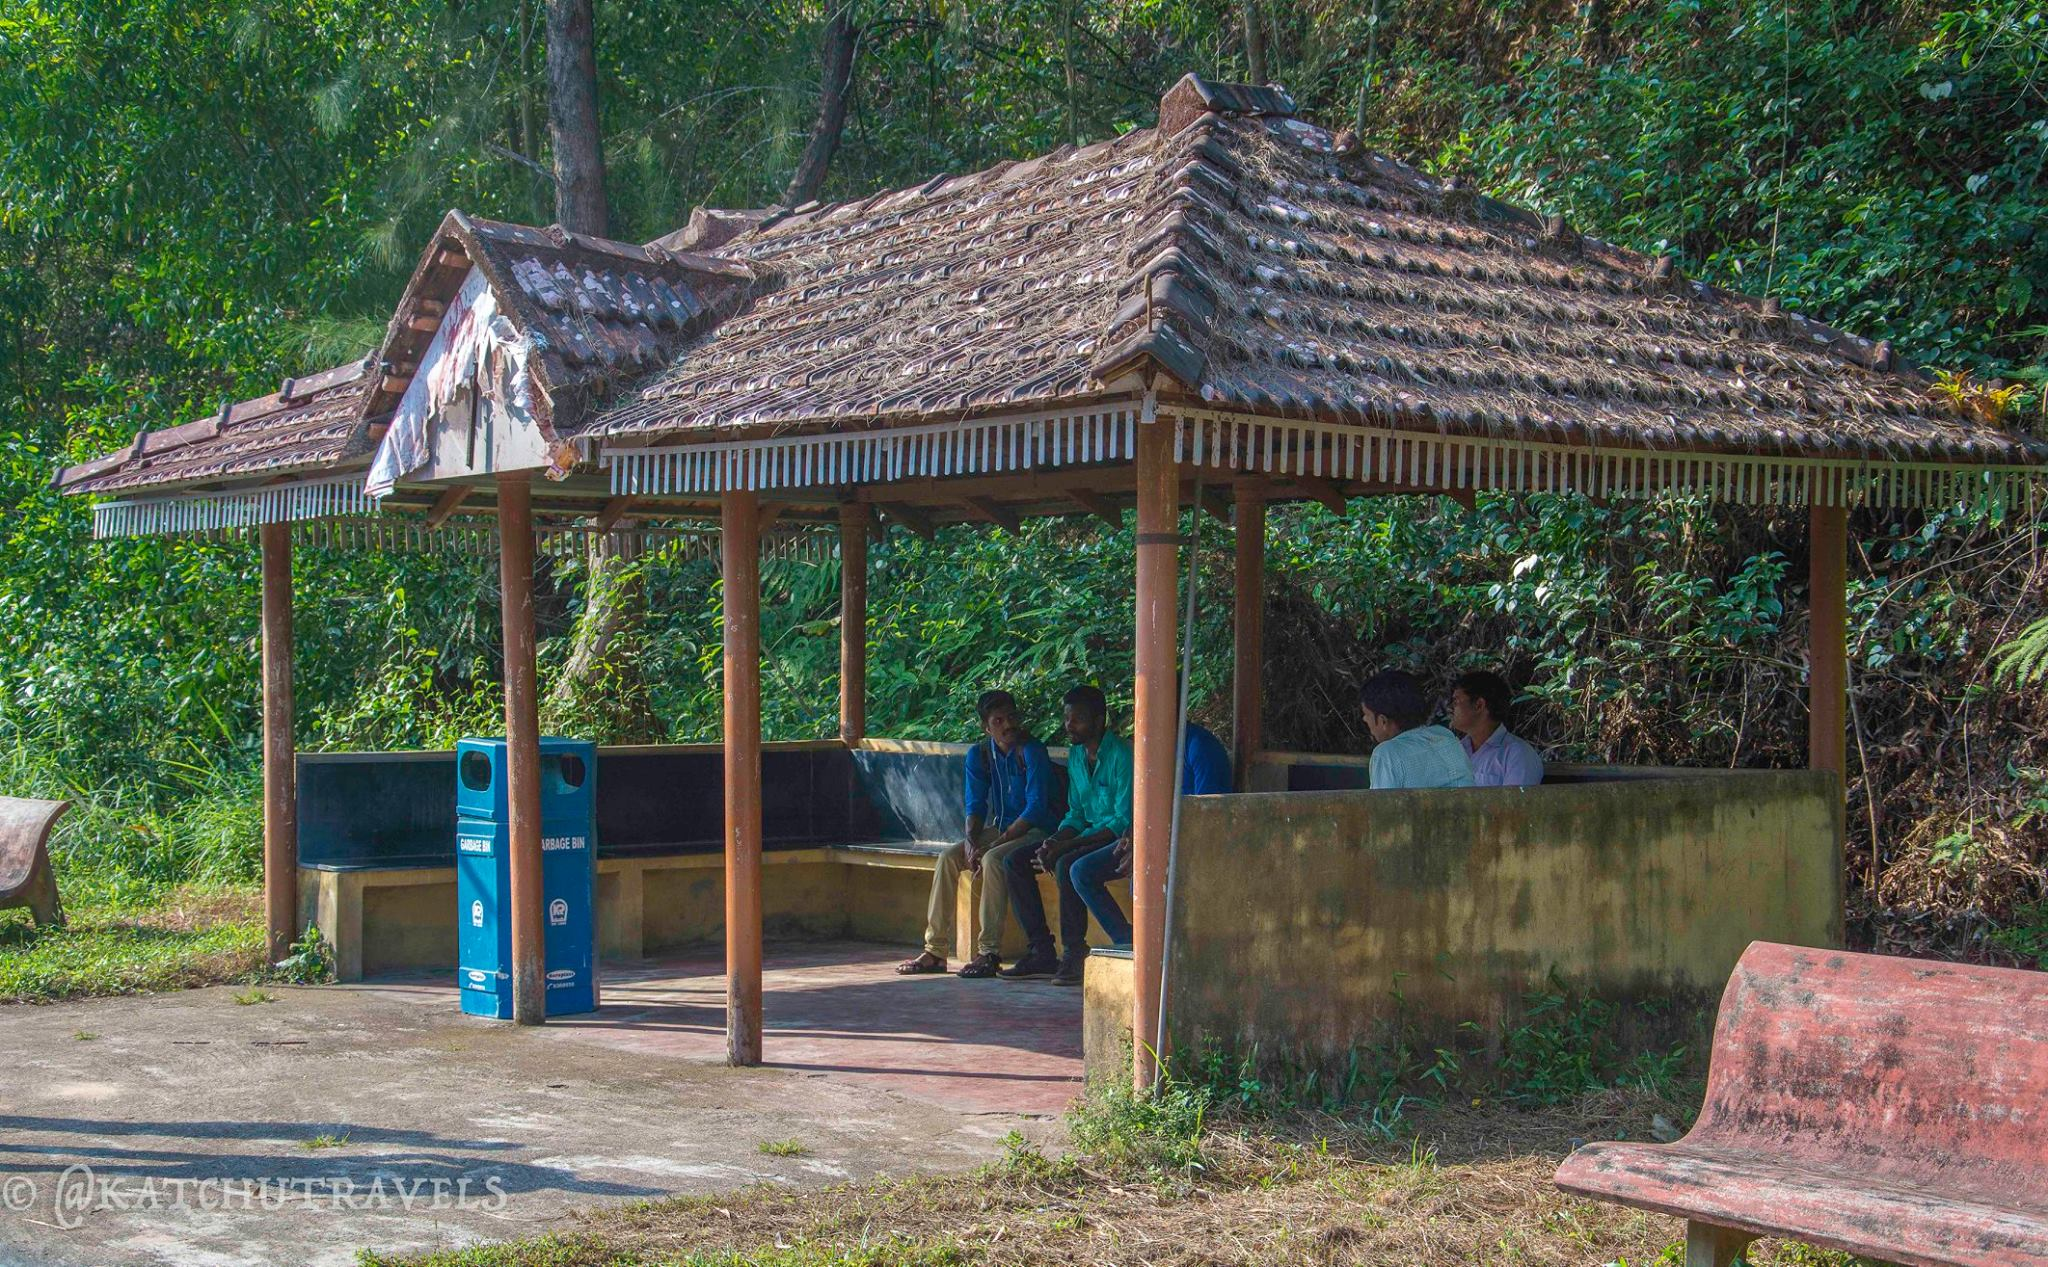 The simplicity of railway shelters at Barkur Railway Station